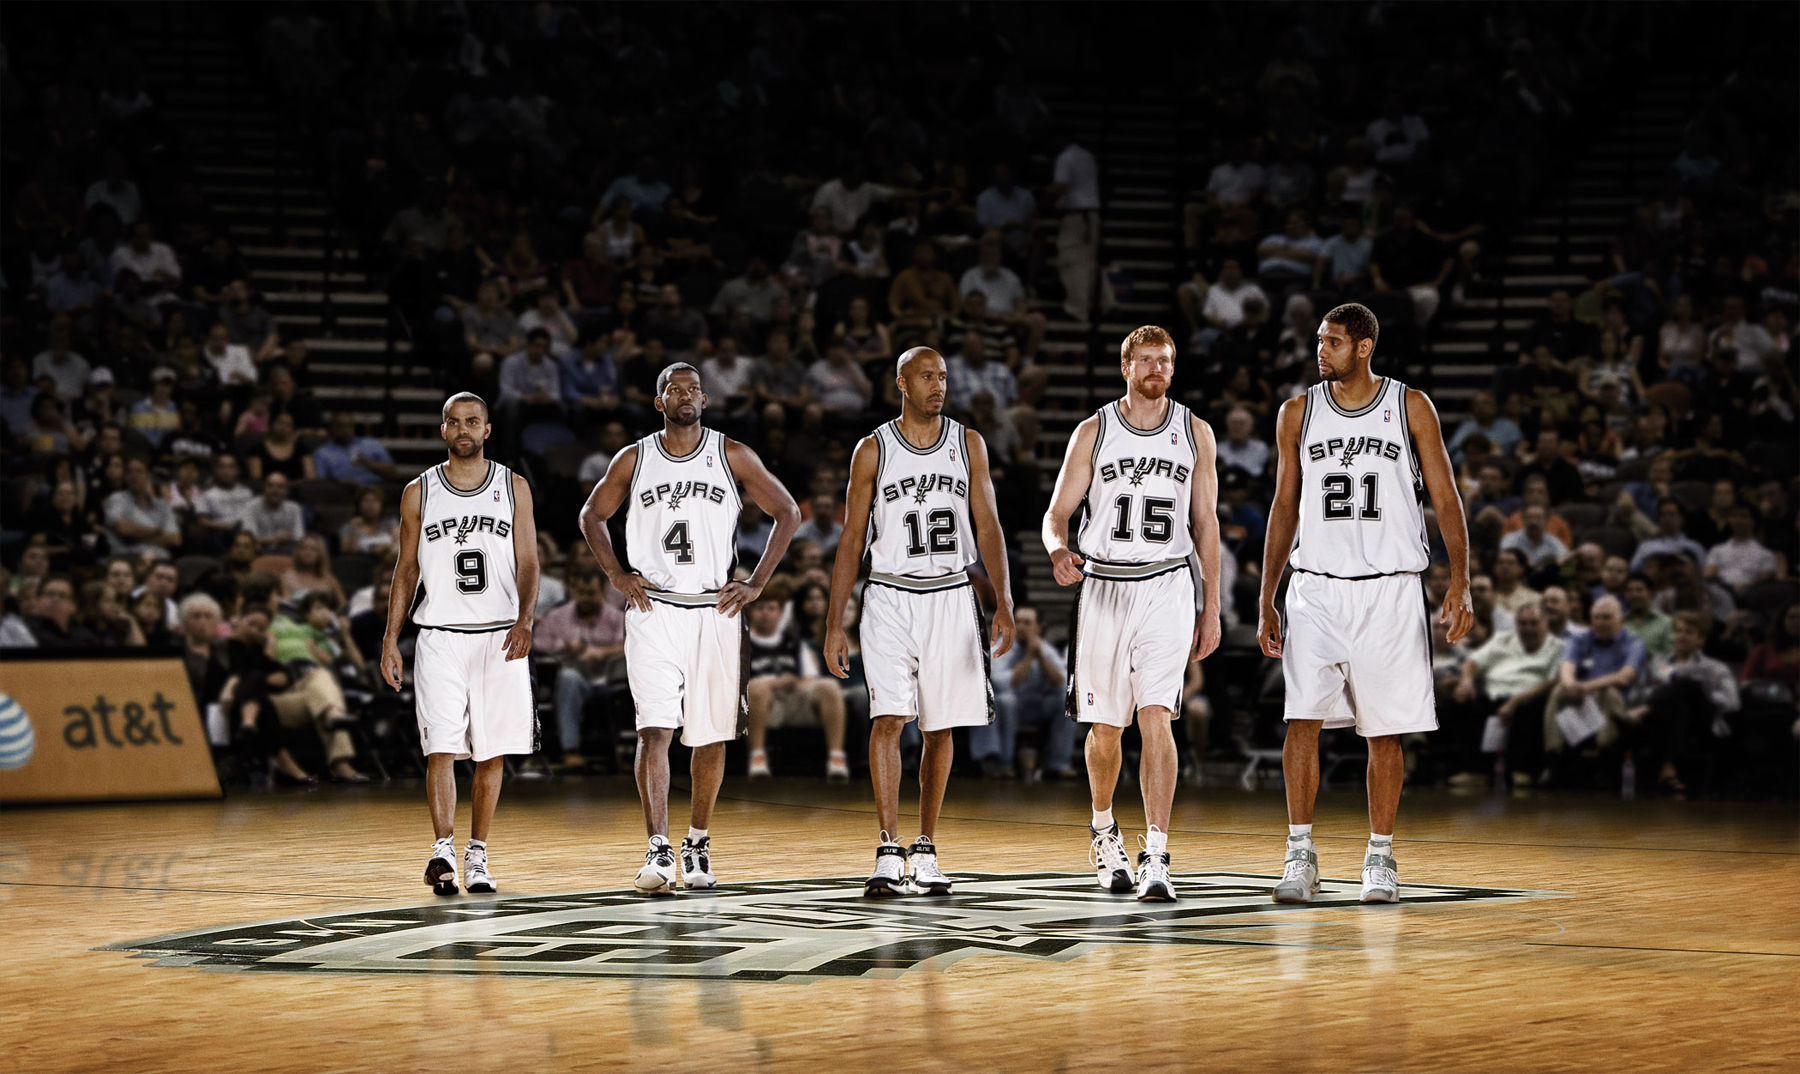 SAN ANTONIO SPURS basketball nba 1 wallpaper background 1800x1074